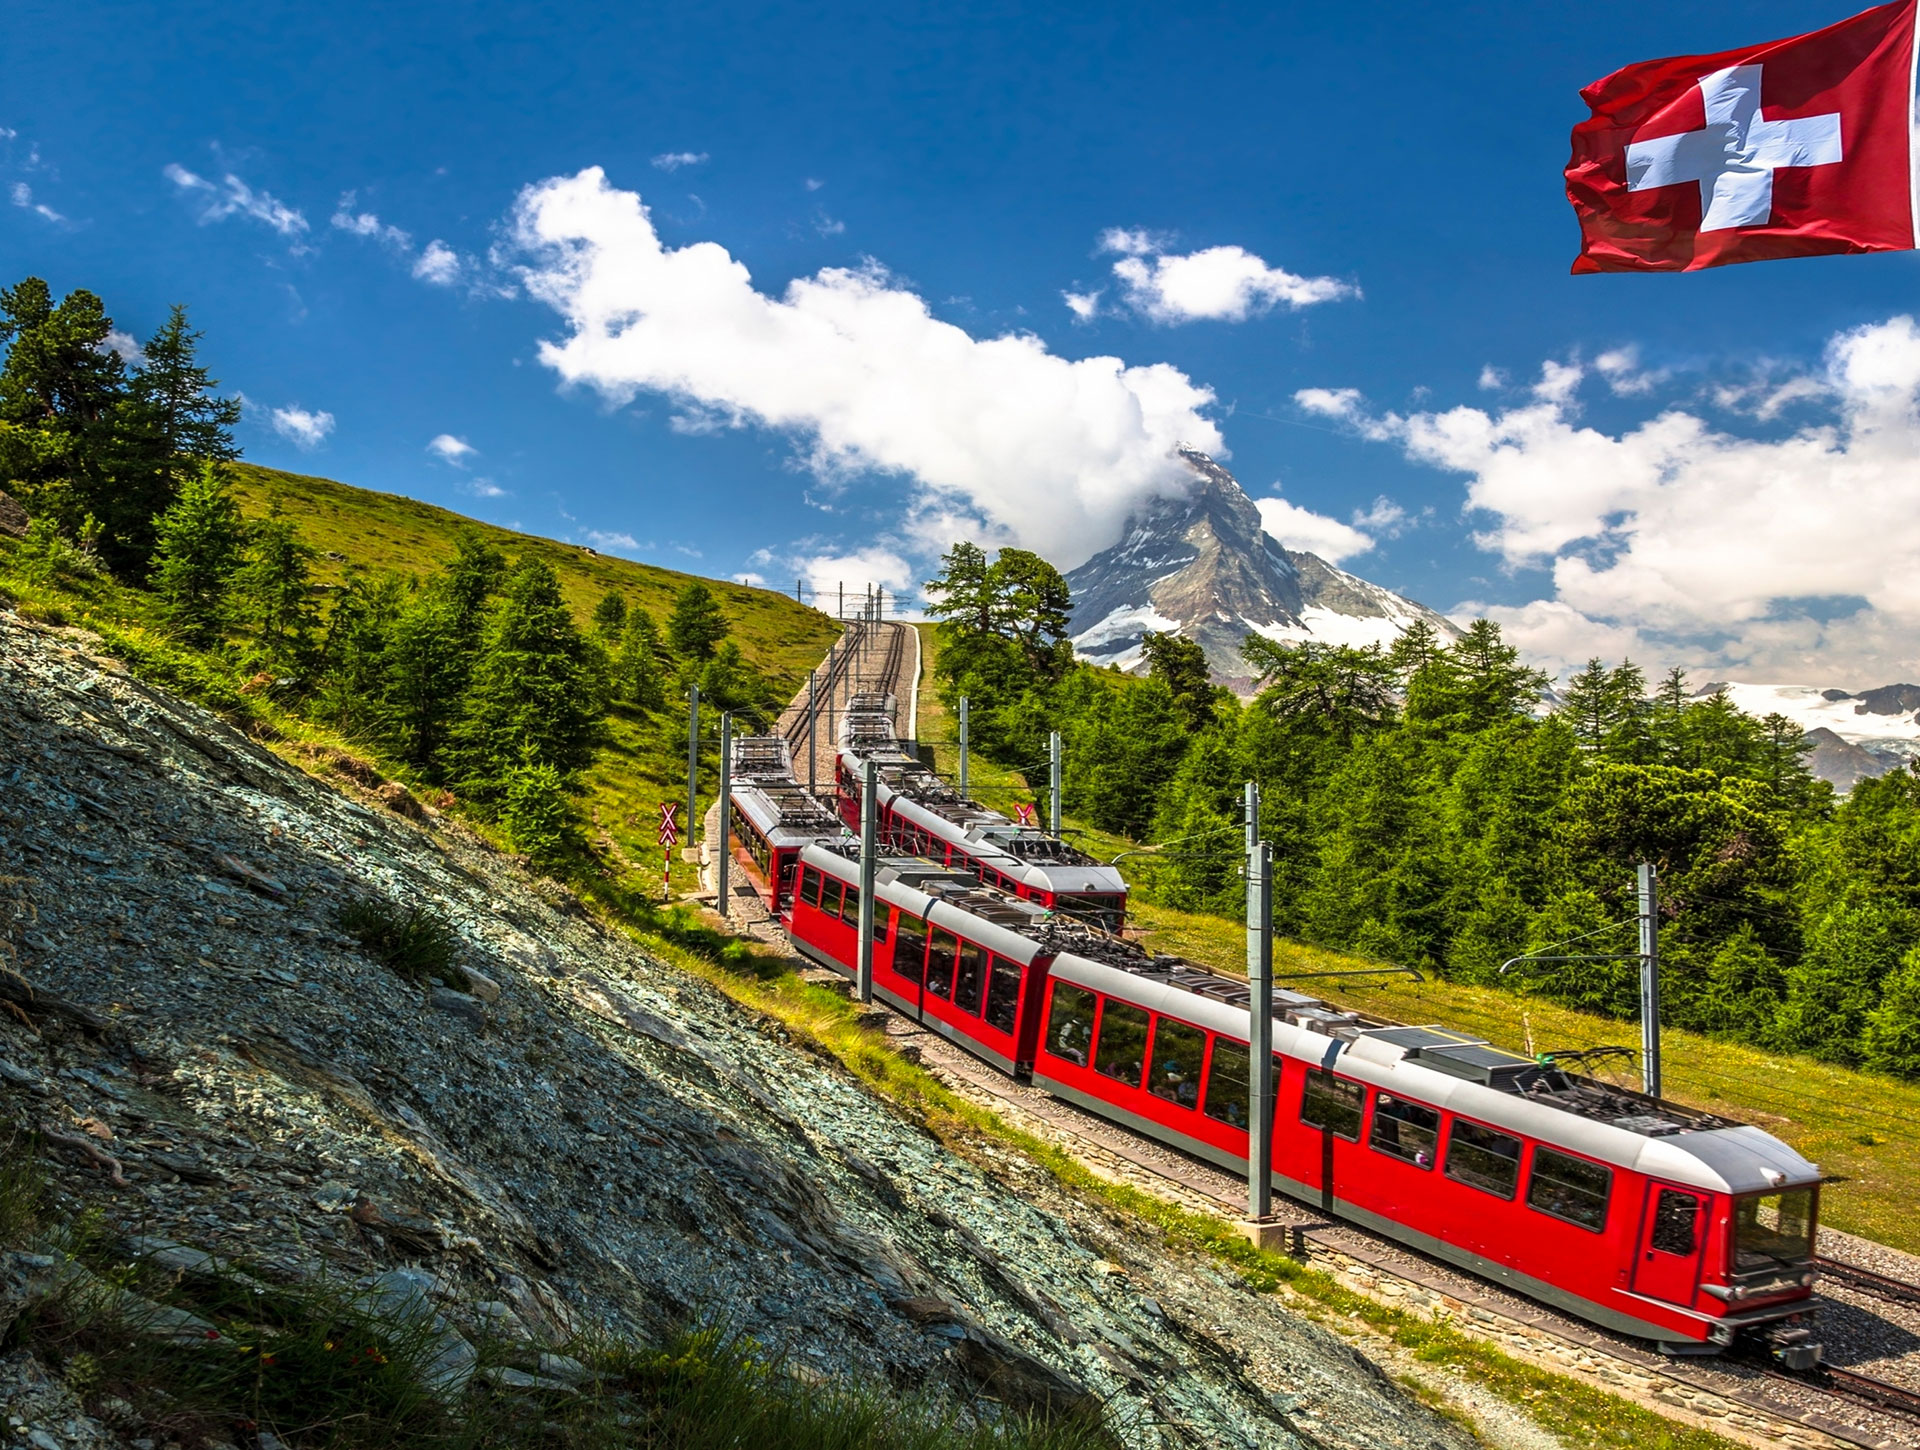 Car-Free-Resort-Zermatt-in-Switzerland.jpg